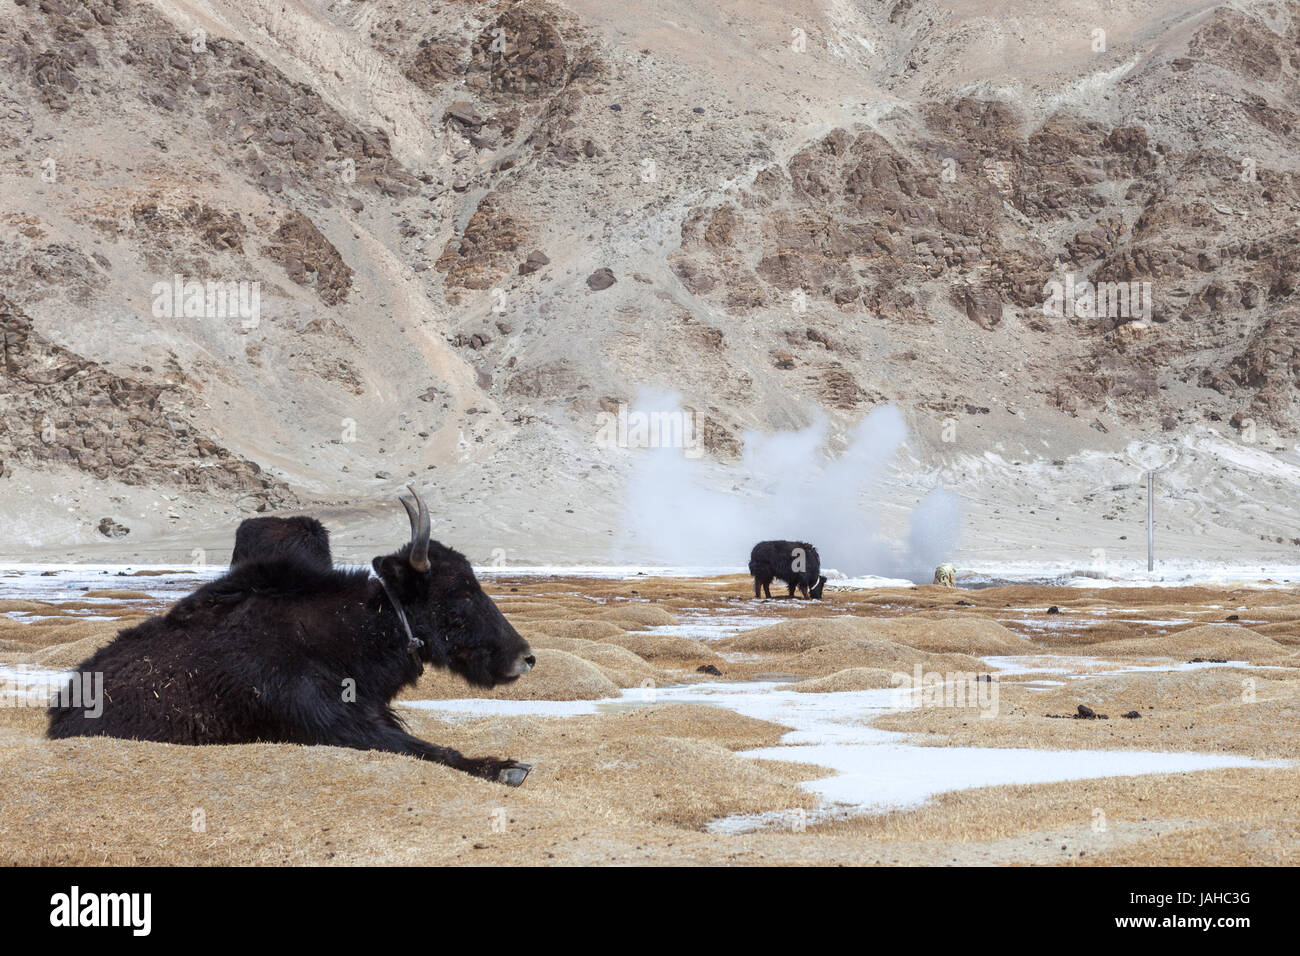 Yaks resting in the grasslands surrounding the Puga Hotsprings in Ladakh. - Stock Image